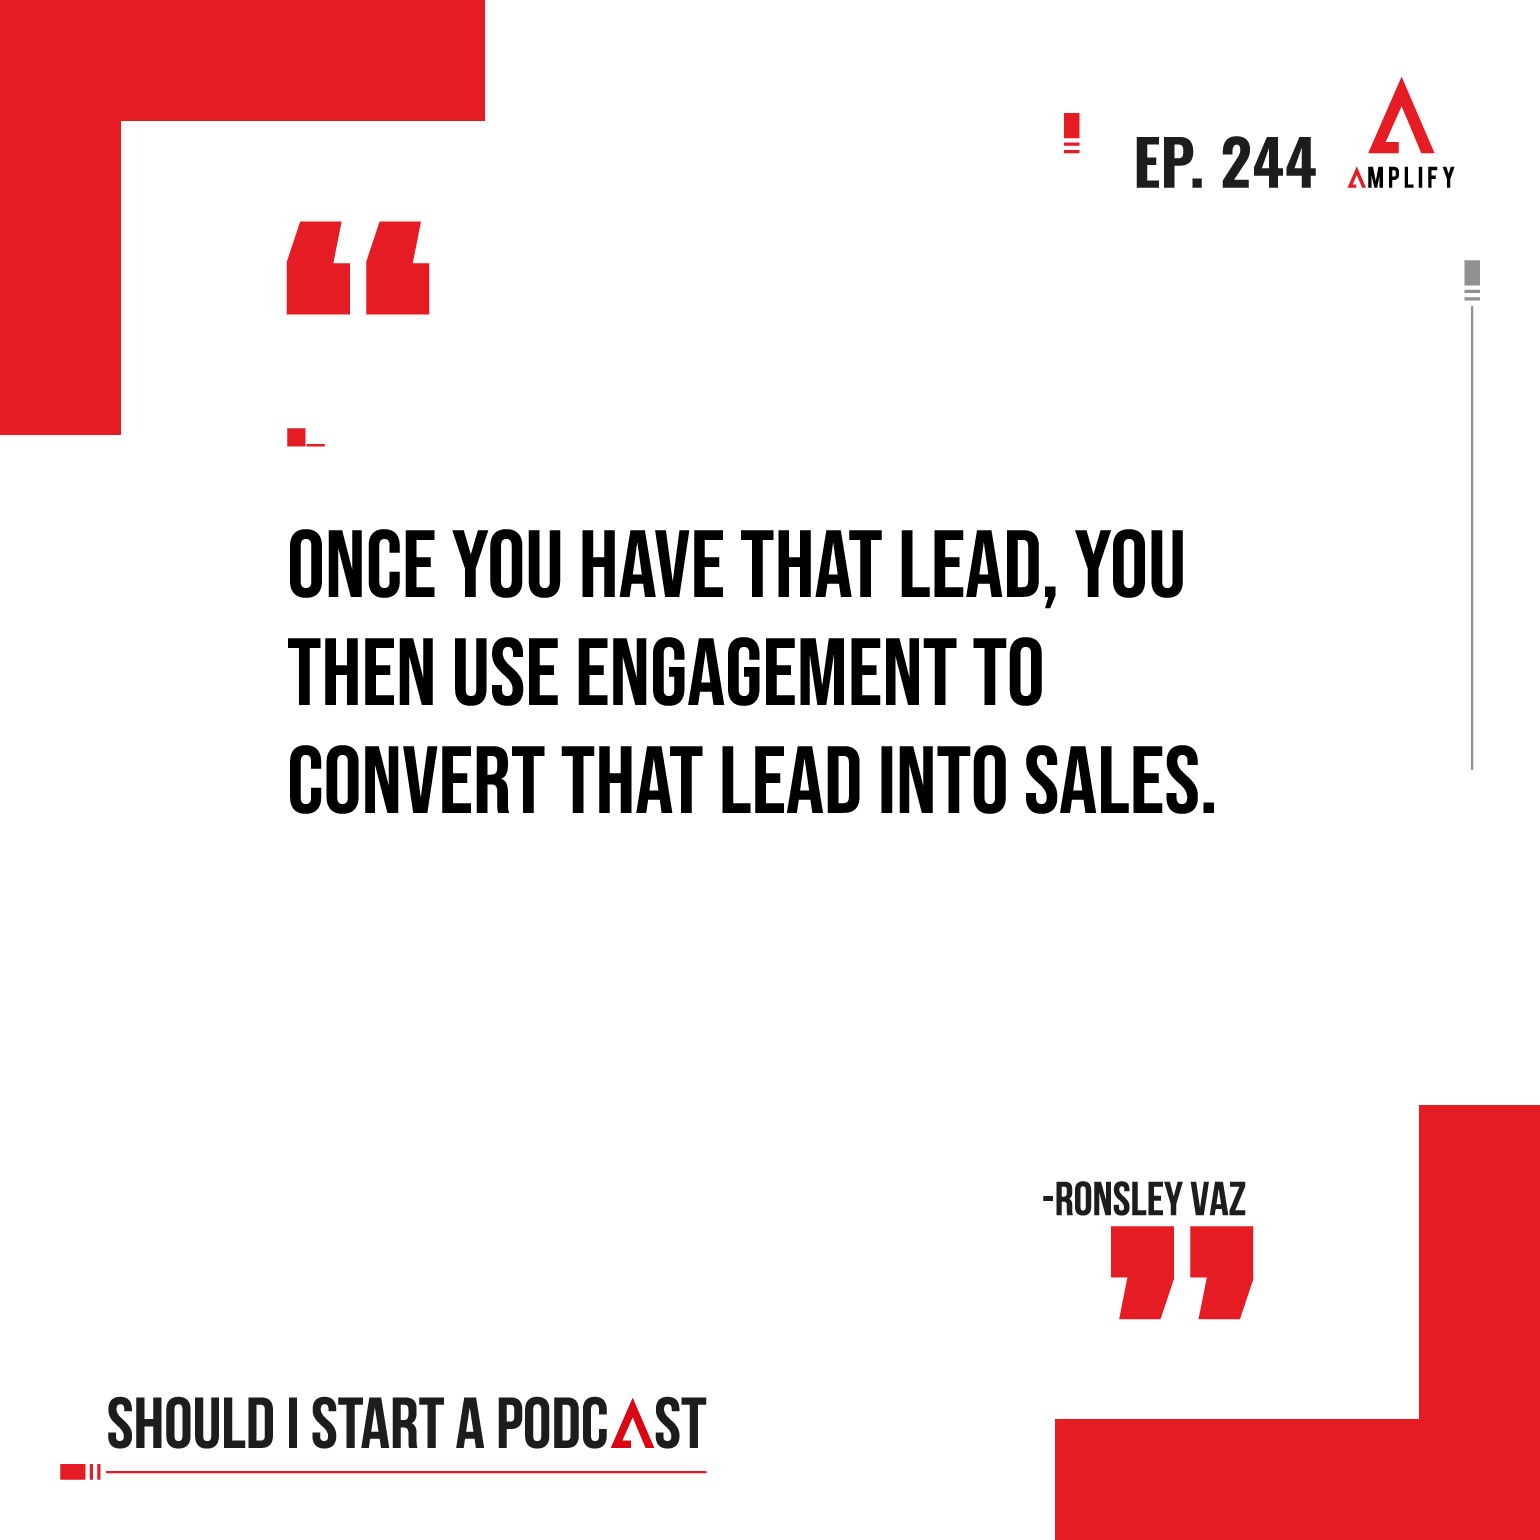 Quote: Once you have that lead, you then use engagement to convert that lead into sales.